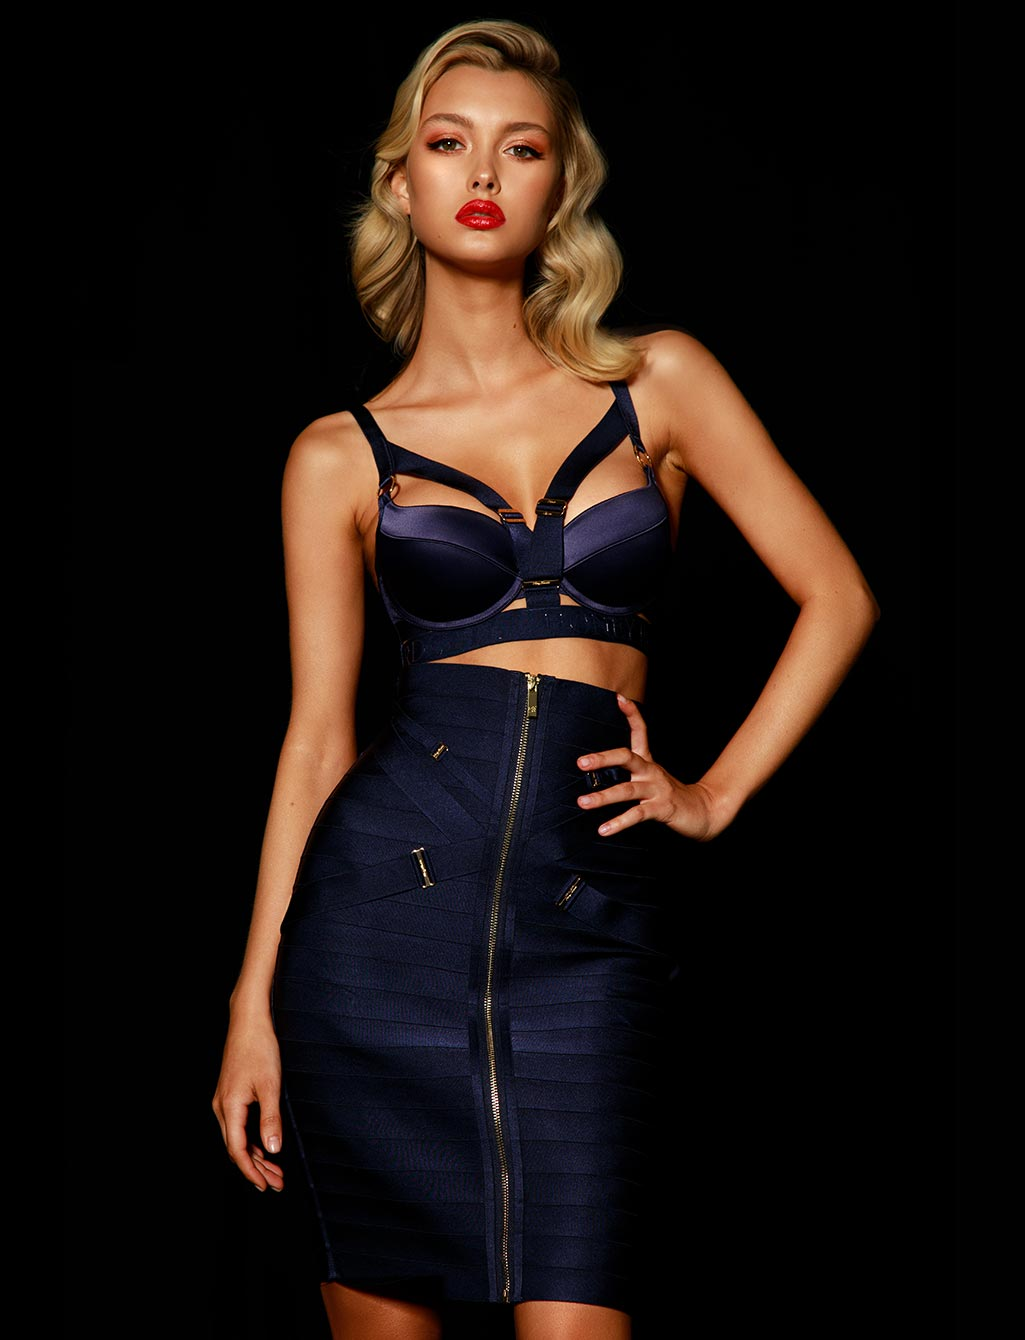 Elvis Navy Skirt - Shop  Lingerie | Honey Birdette